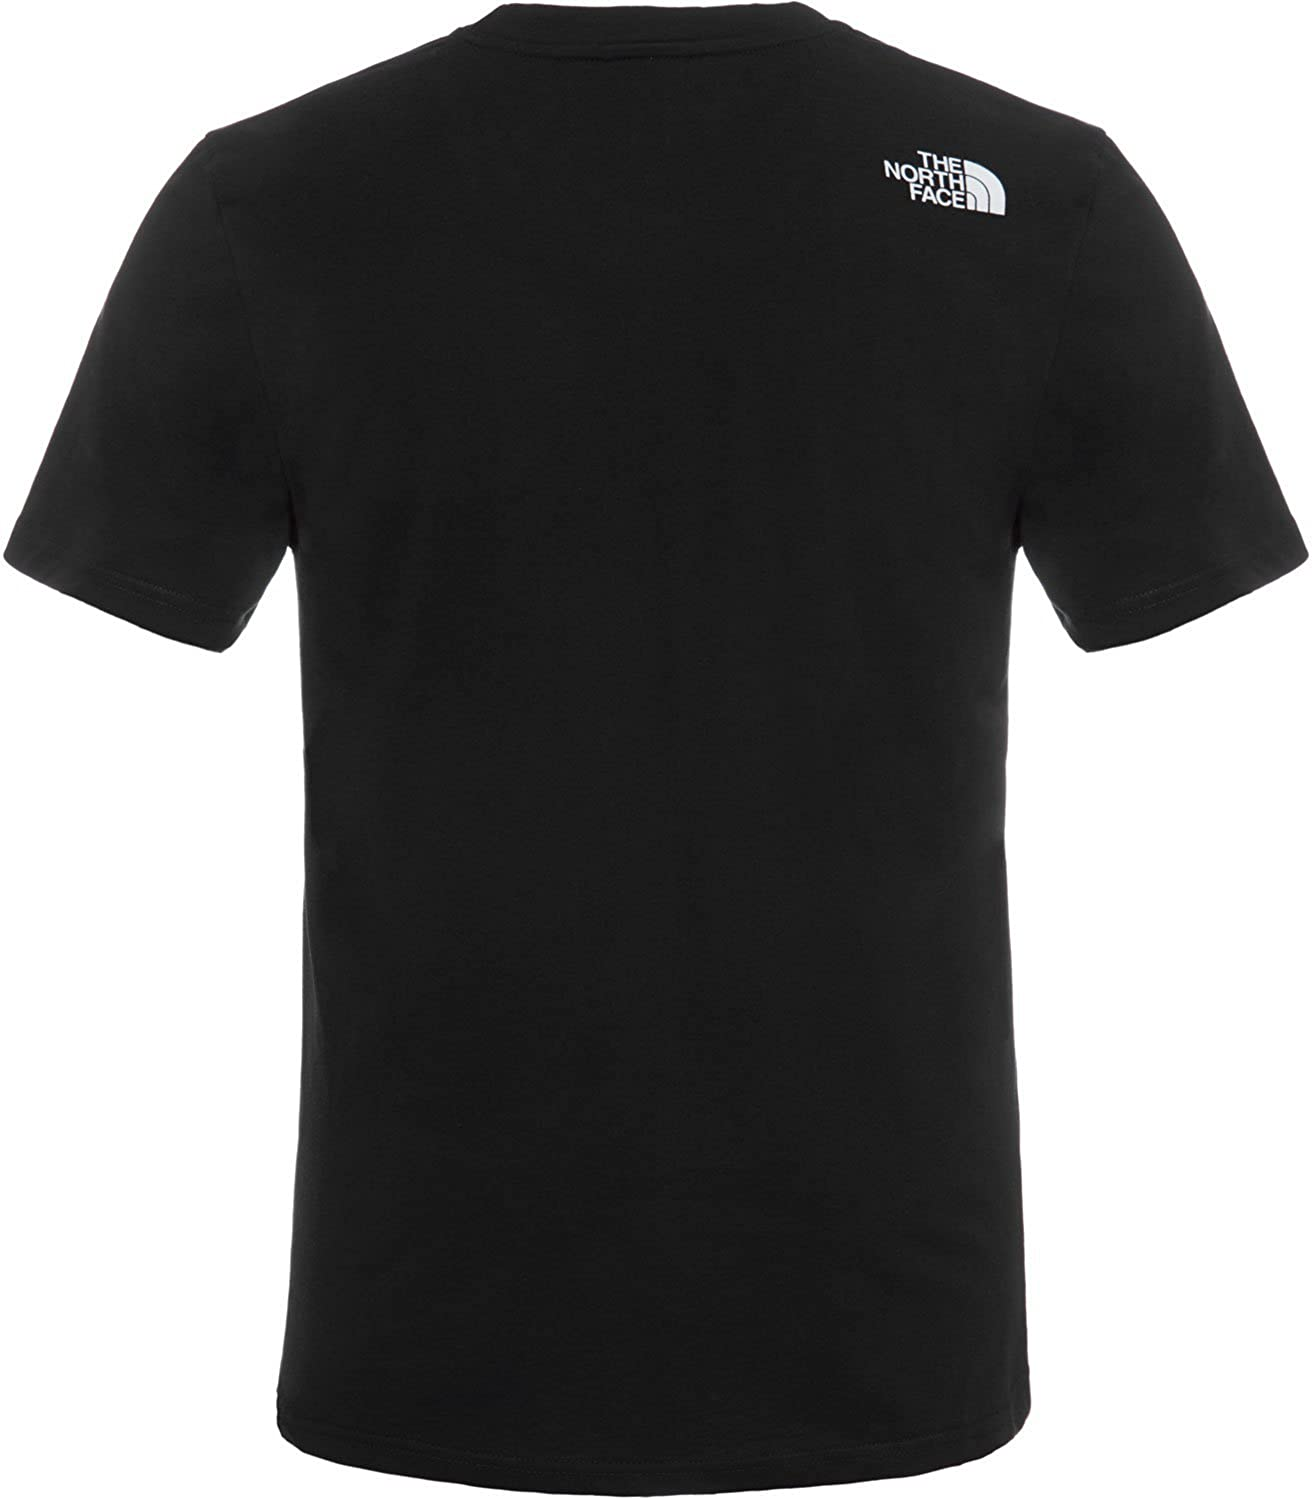 c7a2c3124 The North Face Men Simple Dome Short Sleeved T-Shirt